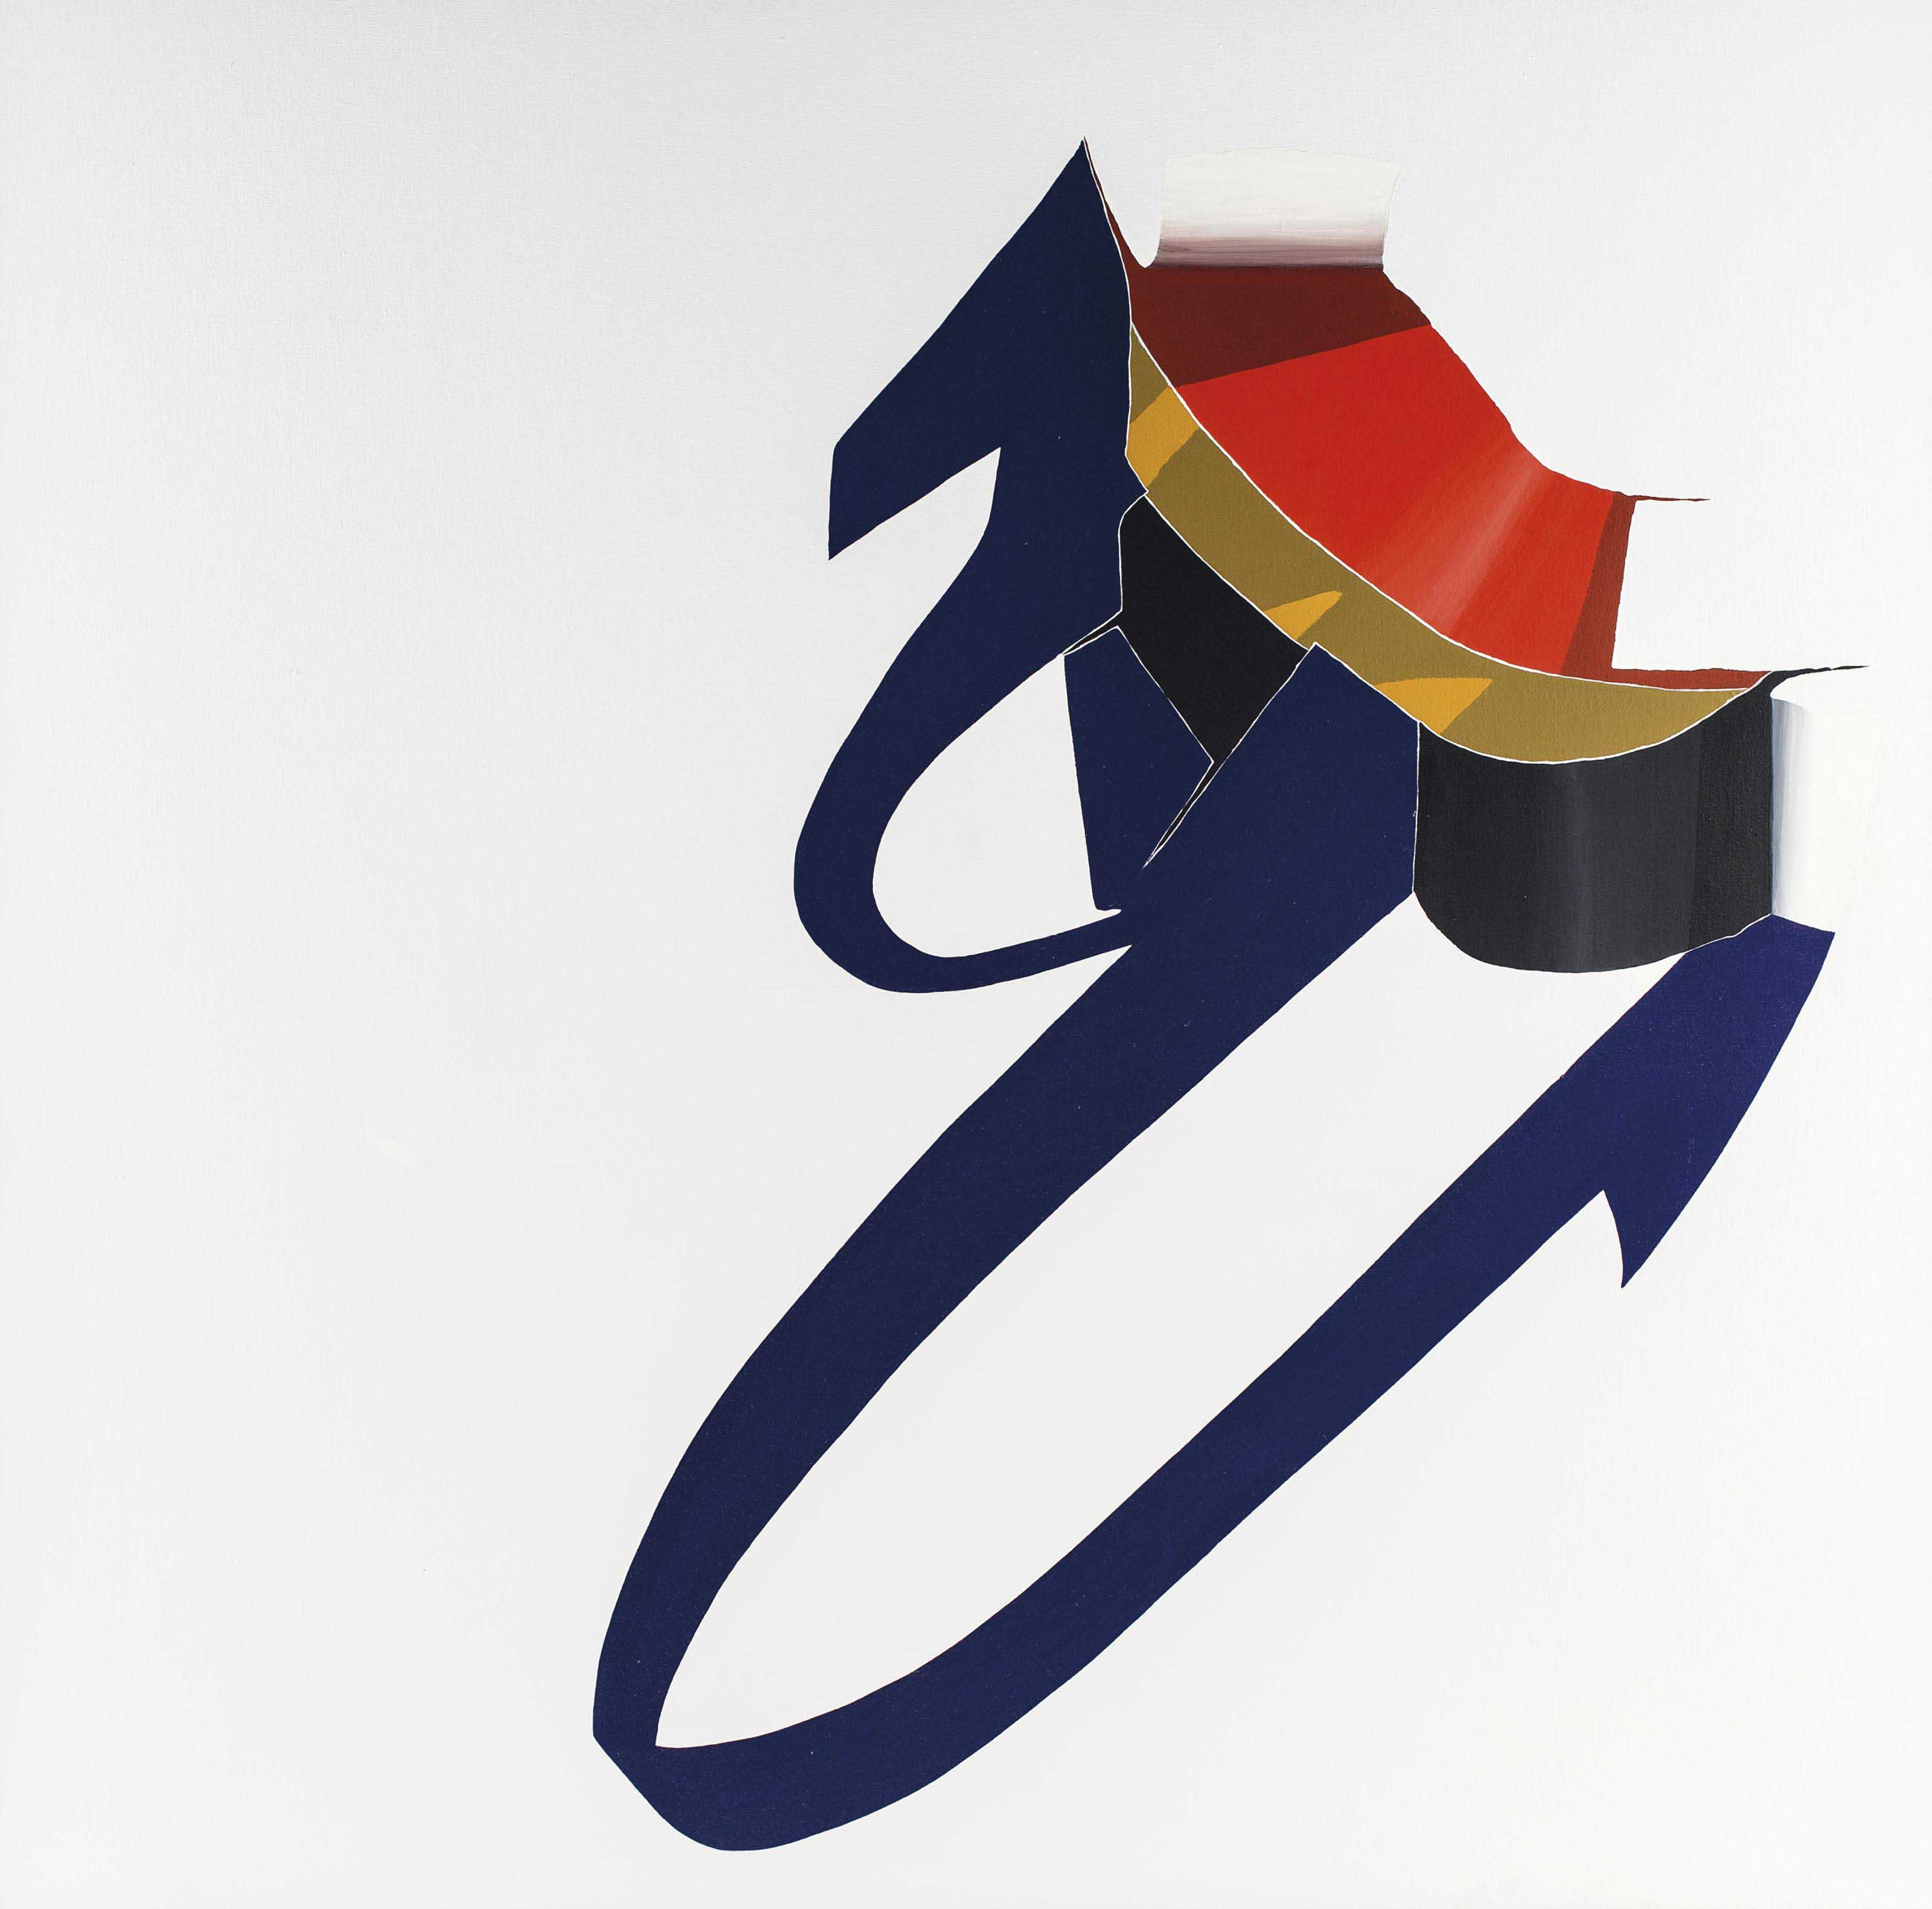 Arabian Horse (from the Ribbons series)